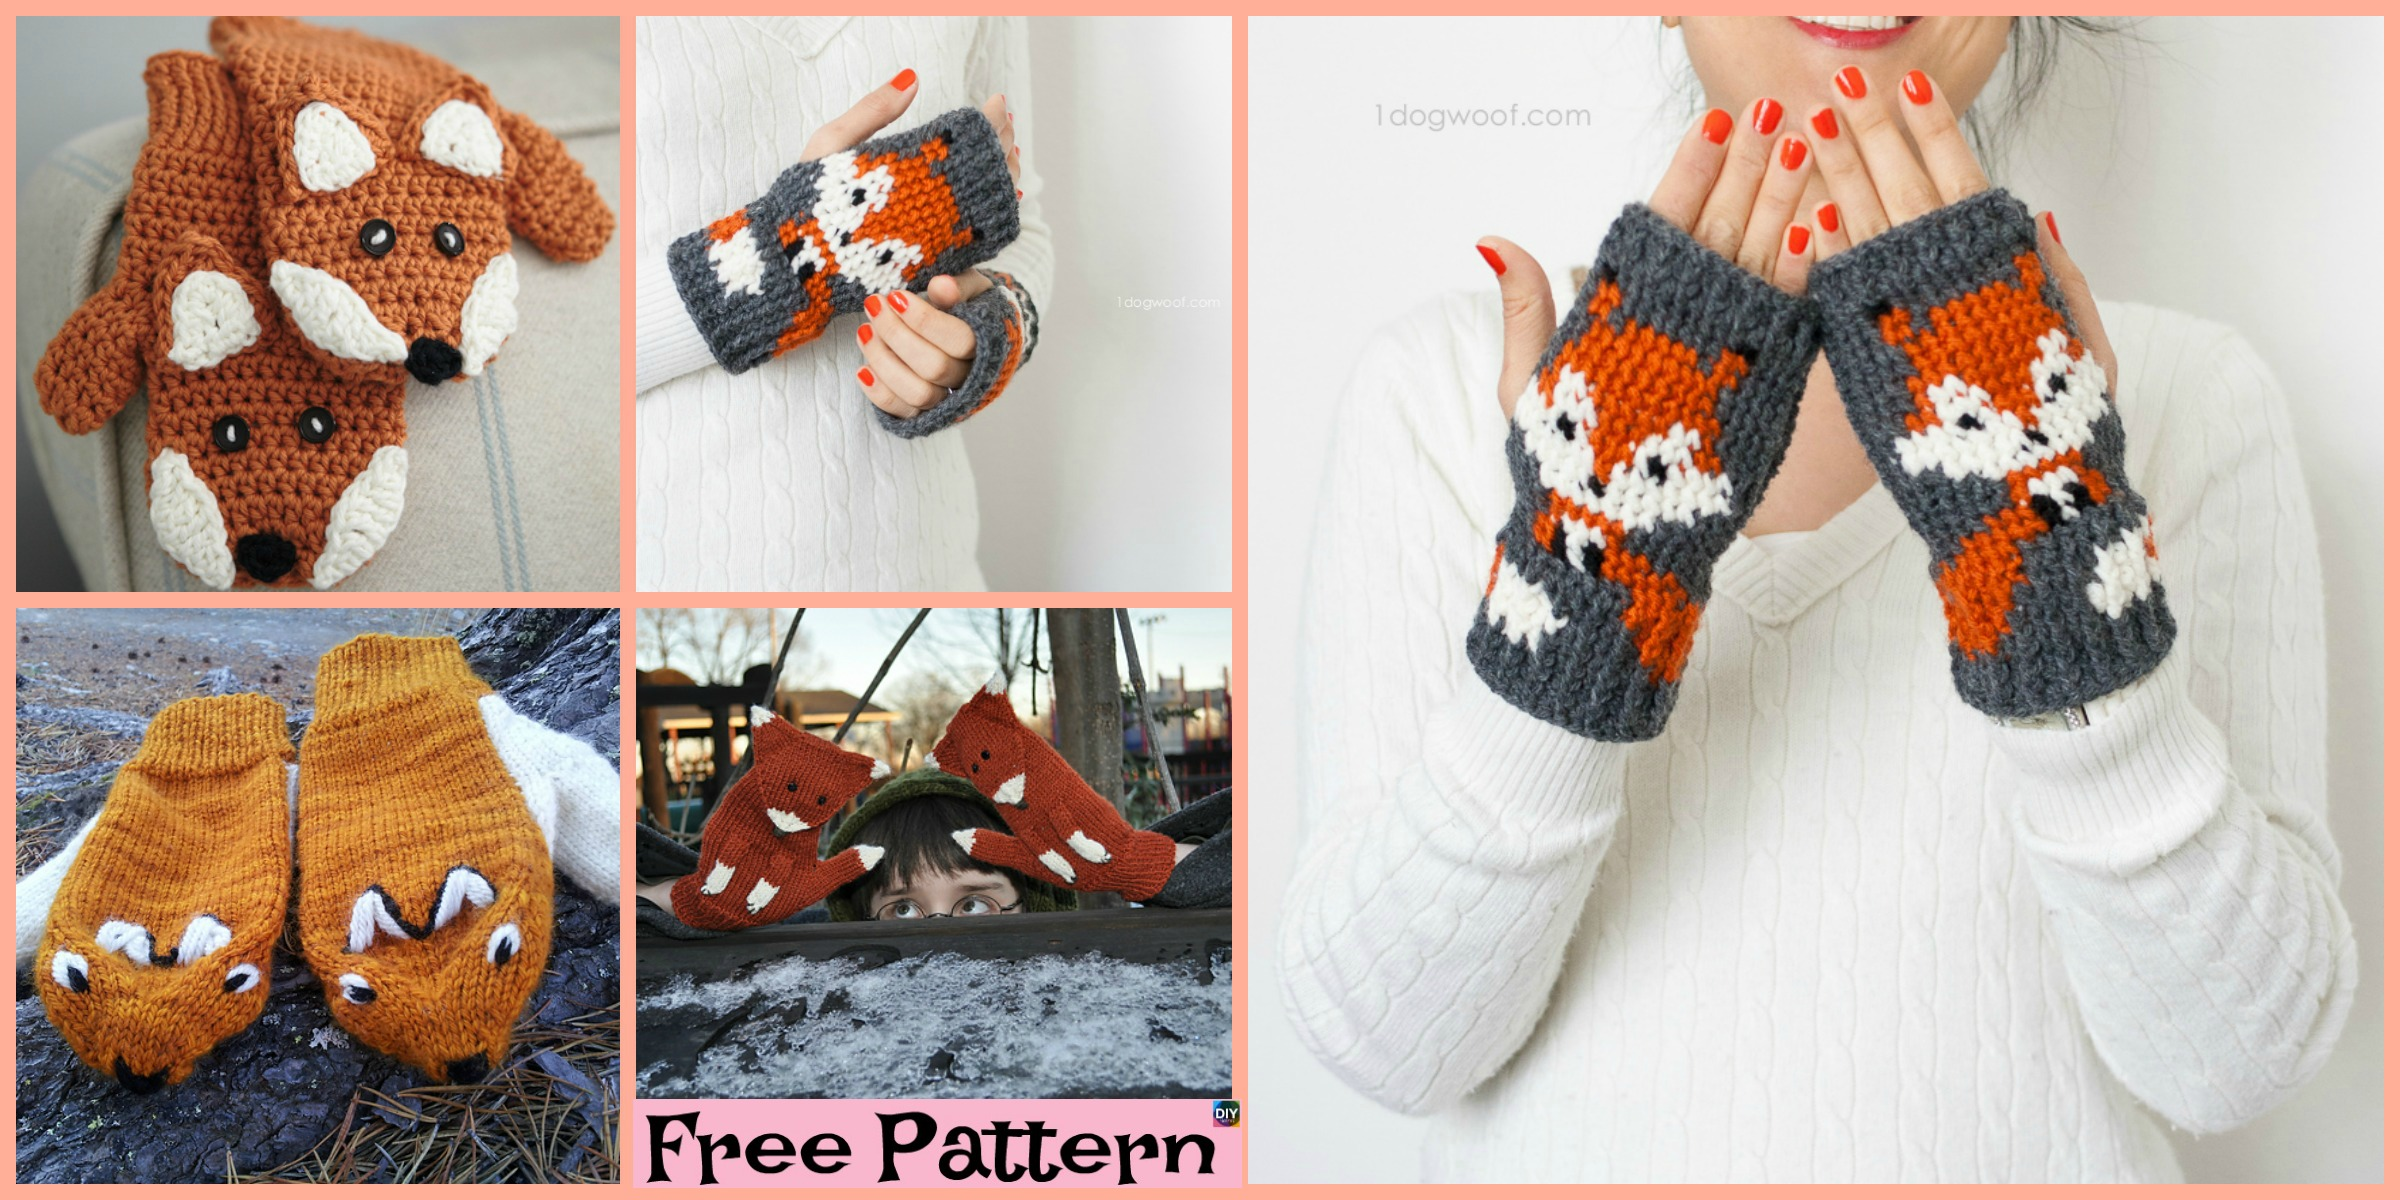 diy4ever-Knit Crochet Fox Mittens - Free Patterns